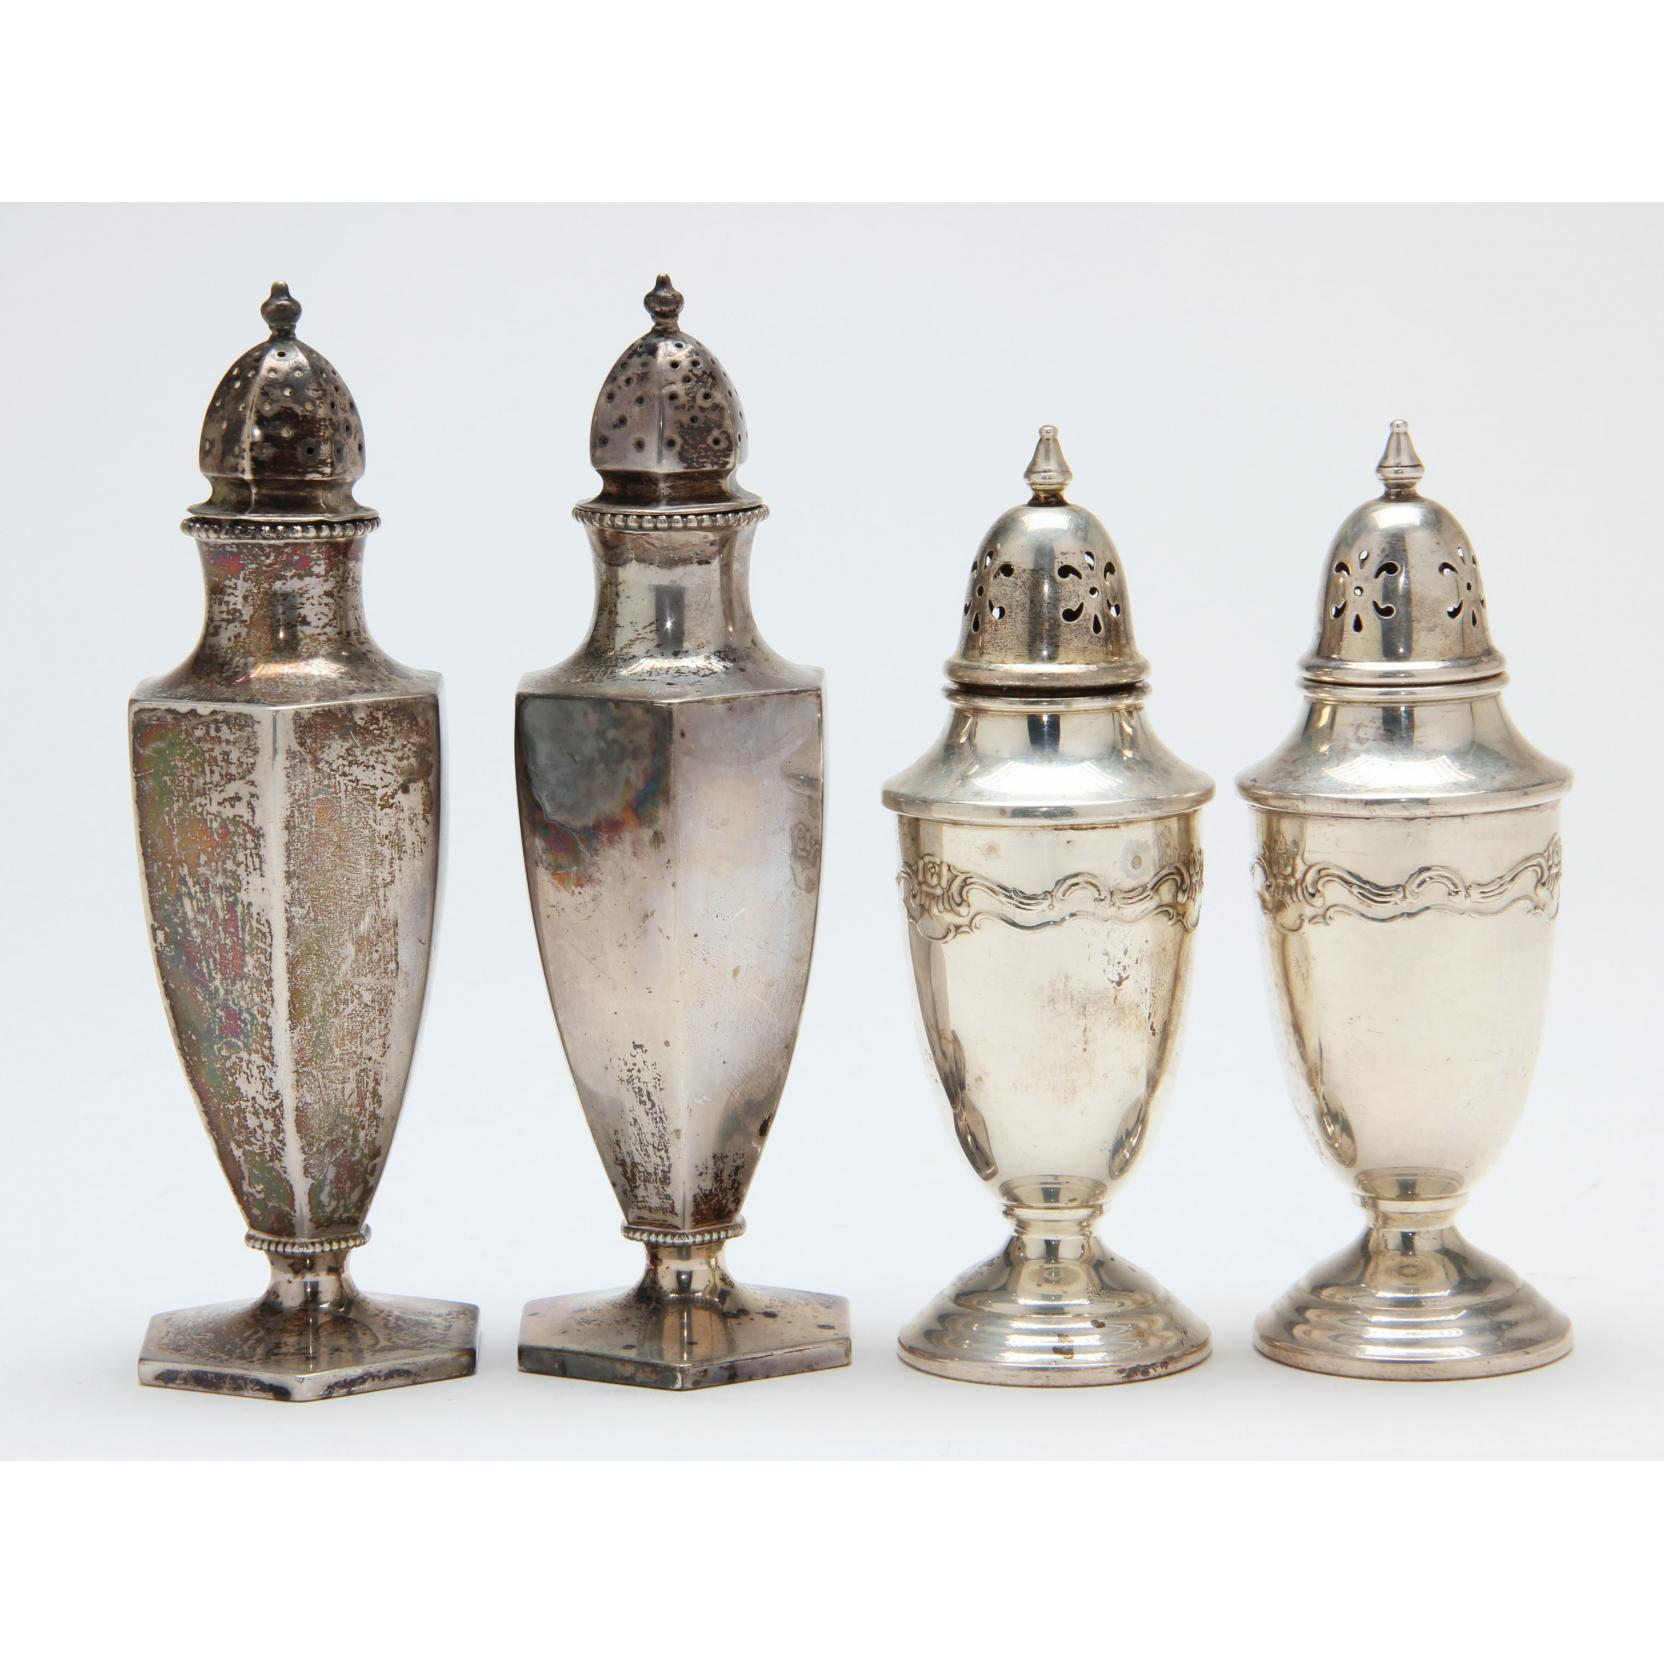 two-pairs-of-sterling-silver-salt-pepper-shakers